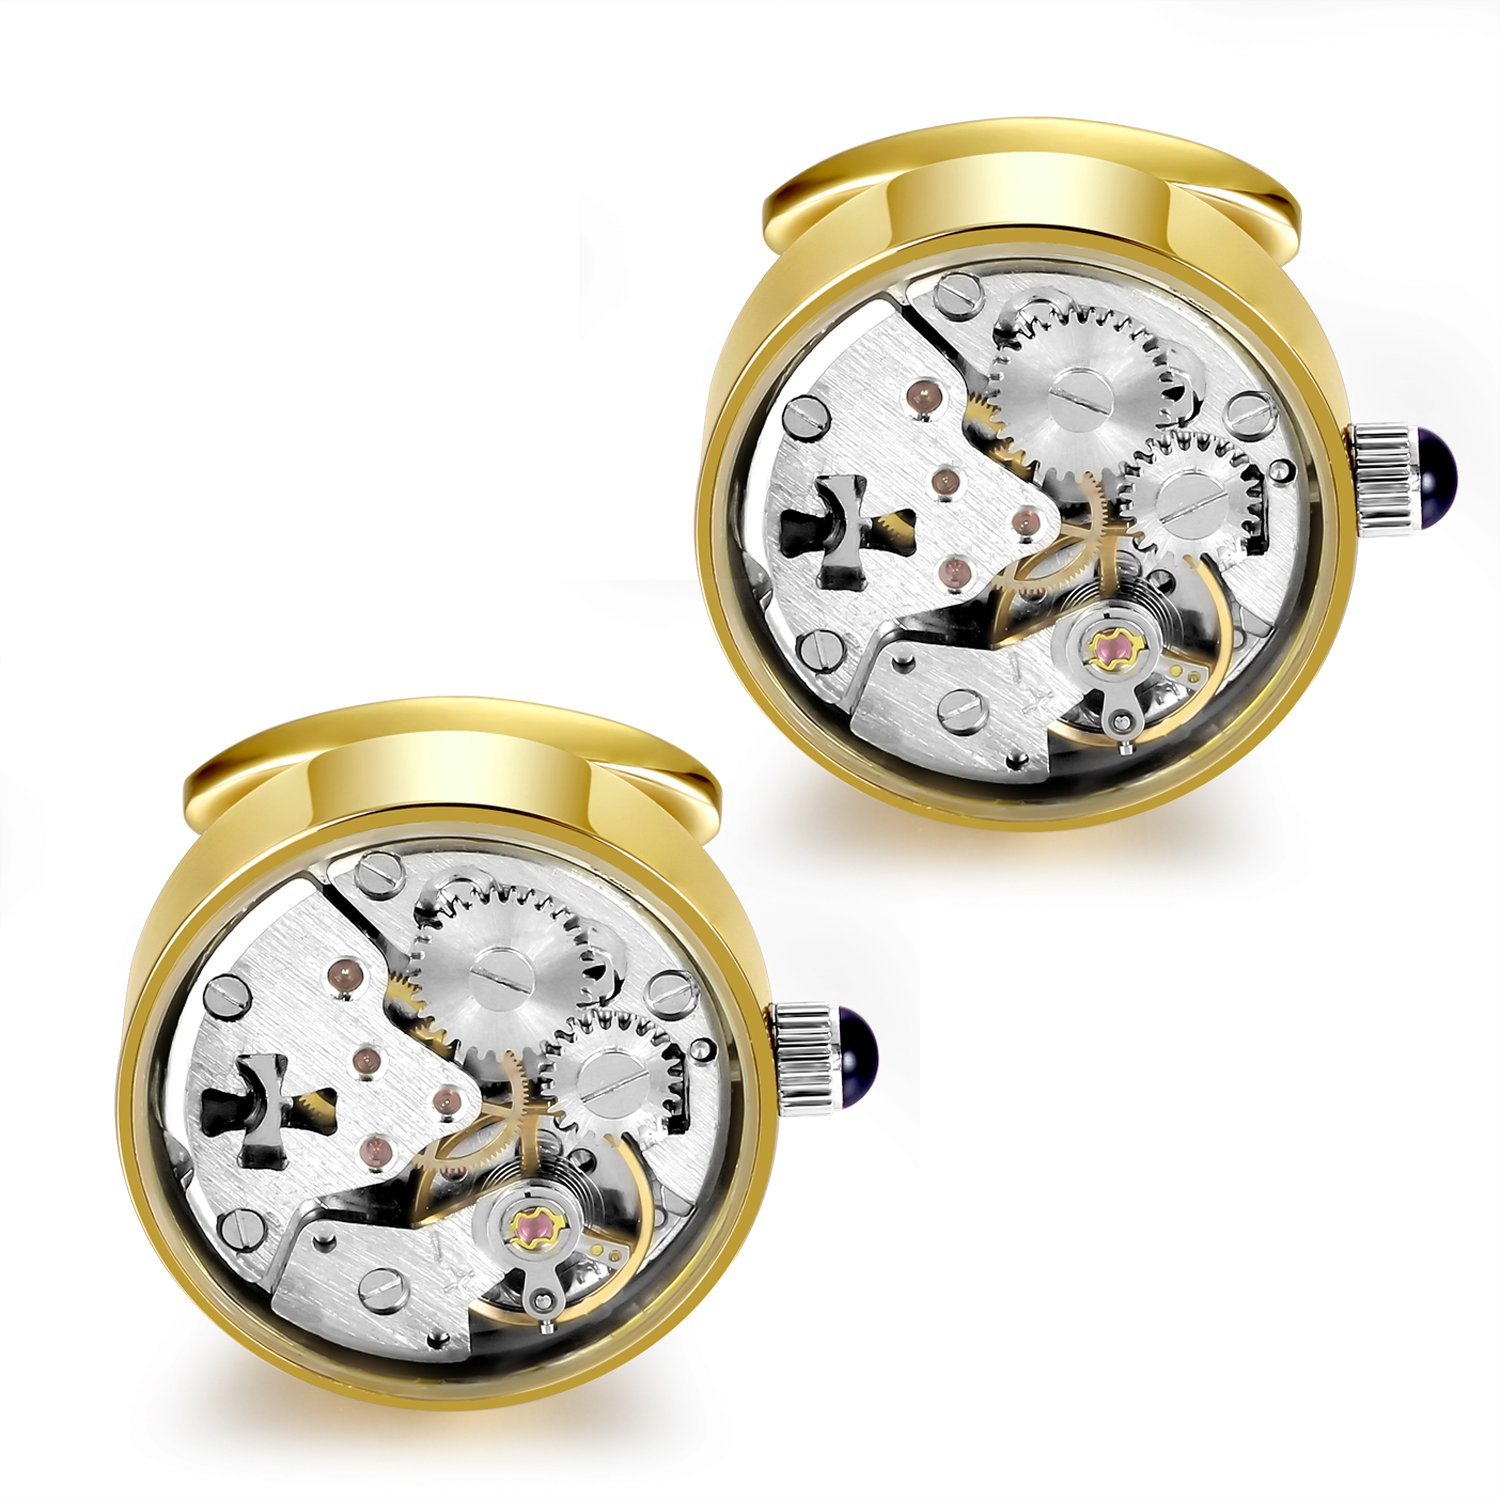 Dich Creat Unisex Stainless Steel Gold PVD Hollow out Cross Working Movement Cufflinks Covered with Glass